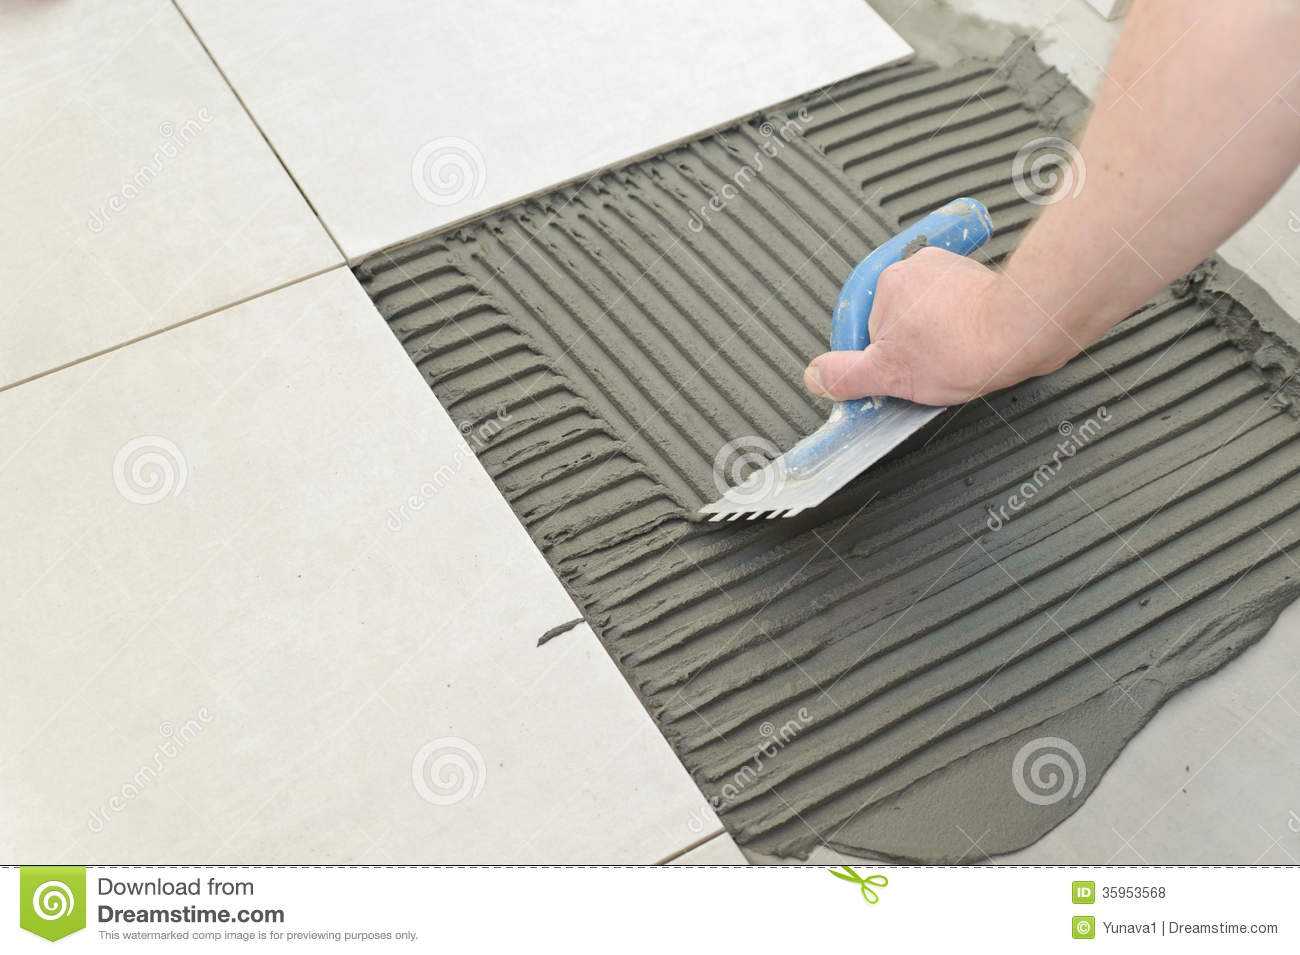 Laying flooring laying laminate flooring on concrete engineered laying ceramic tiles stock photo image of ceramic for laying flooring installing ceramic tile on concrete tile design dailygadgetfo Images